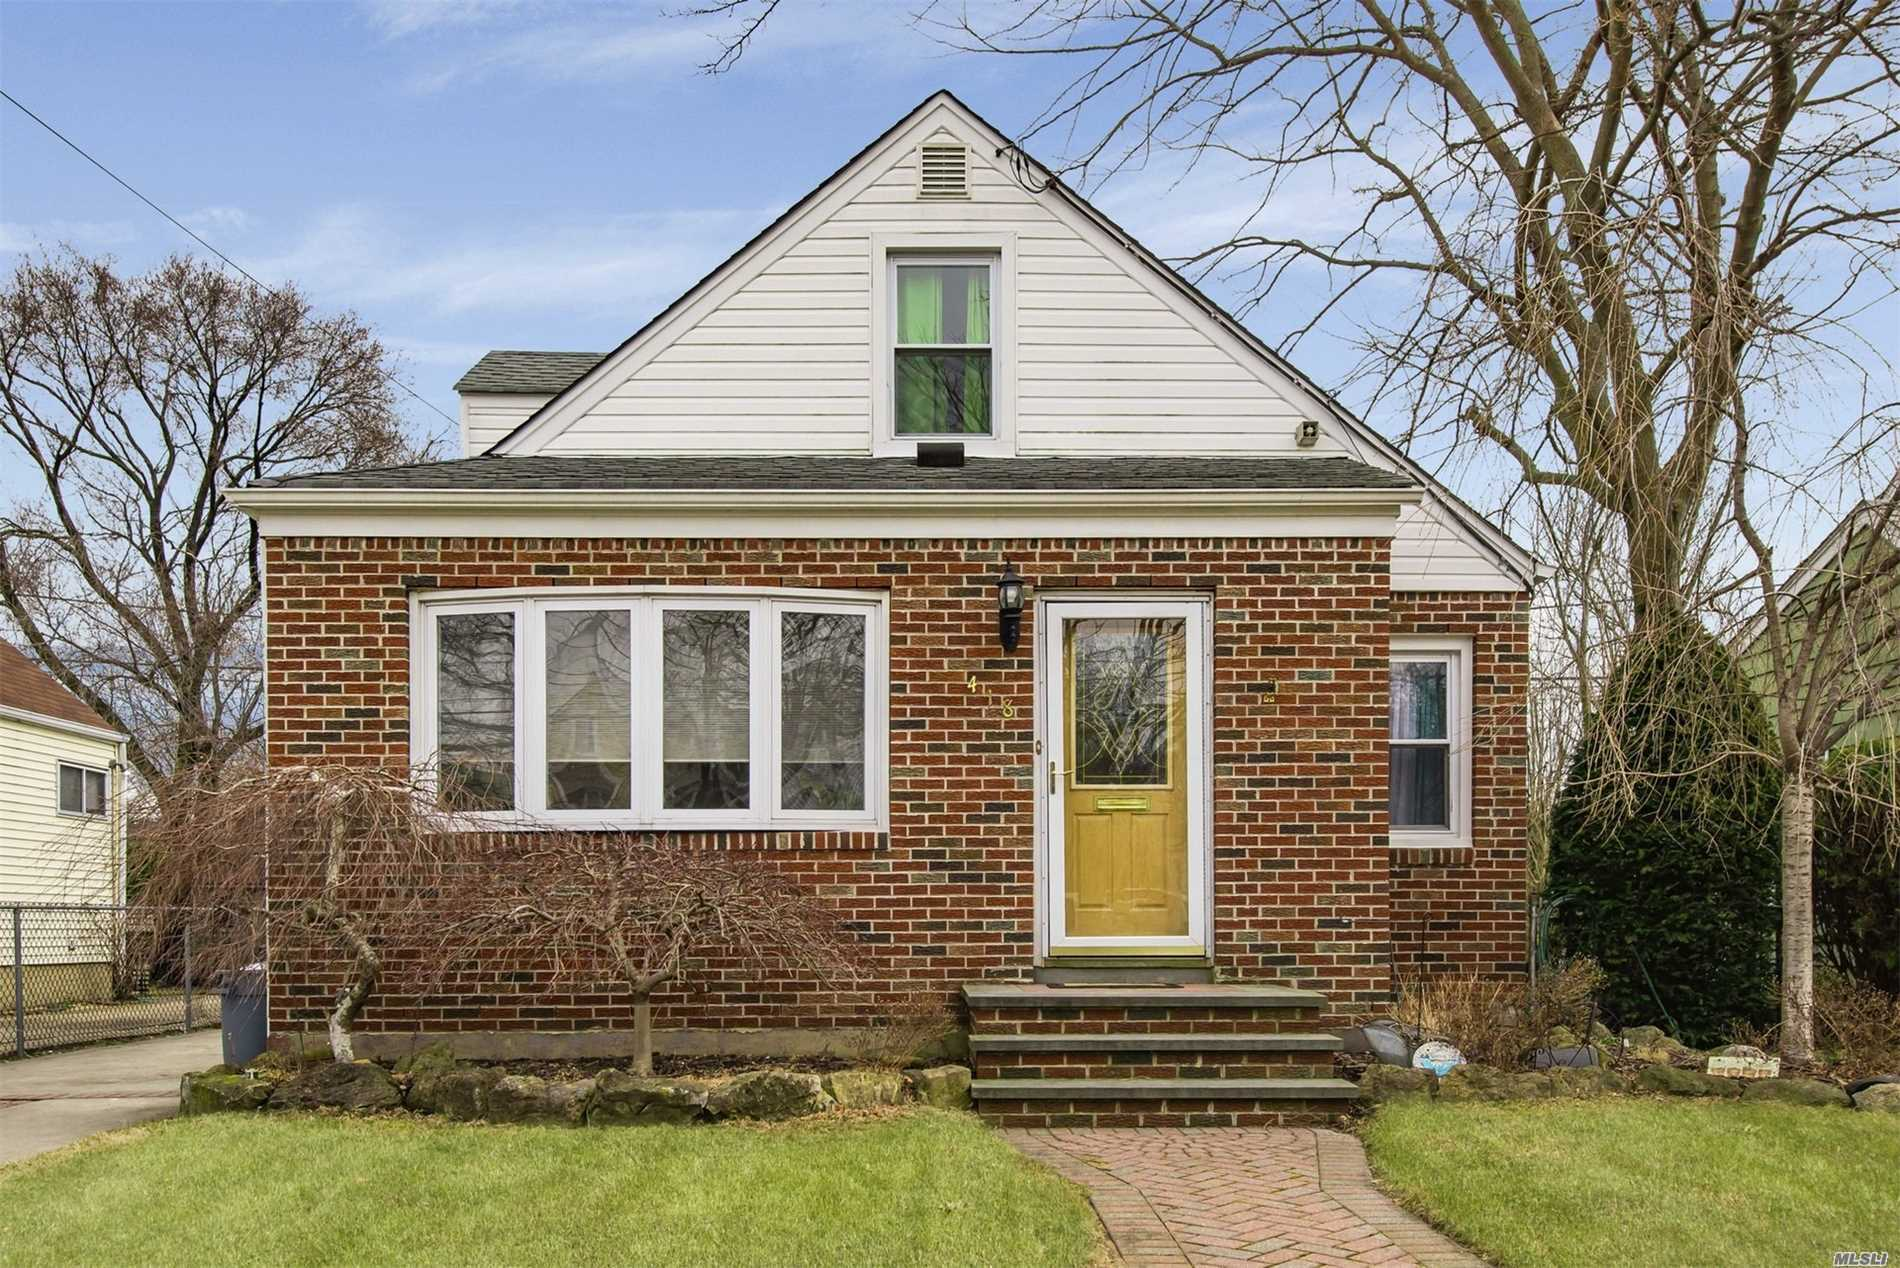 Solid Brick And Vinyl Home 7 Rooms 3 Or 4 Bedrooms 2 Full Baths Wood Floors Finished Basement W/ Full Bath Enter From Side Entrance, One Month Old Gas Burner Separate Hot Water Heater Laundry Area Walking Distance To Railroad Close To All, Deep Driveway